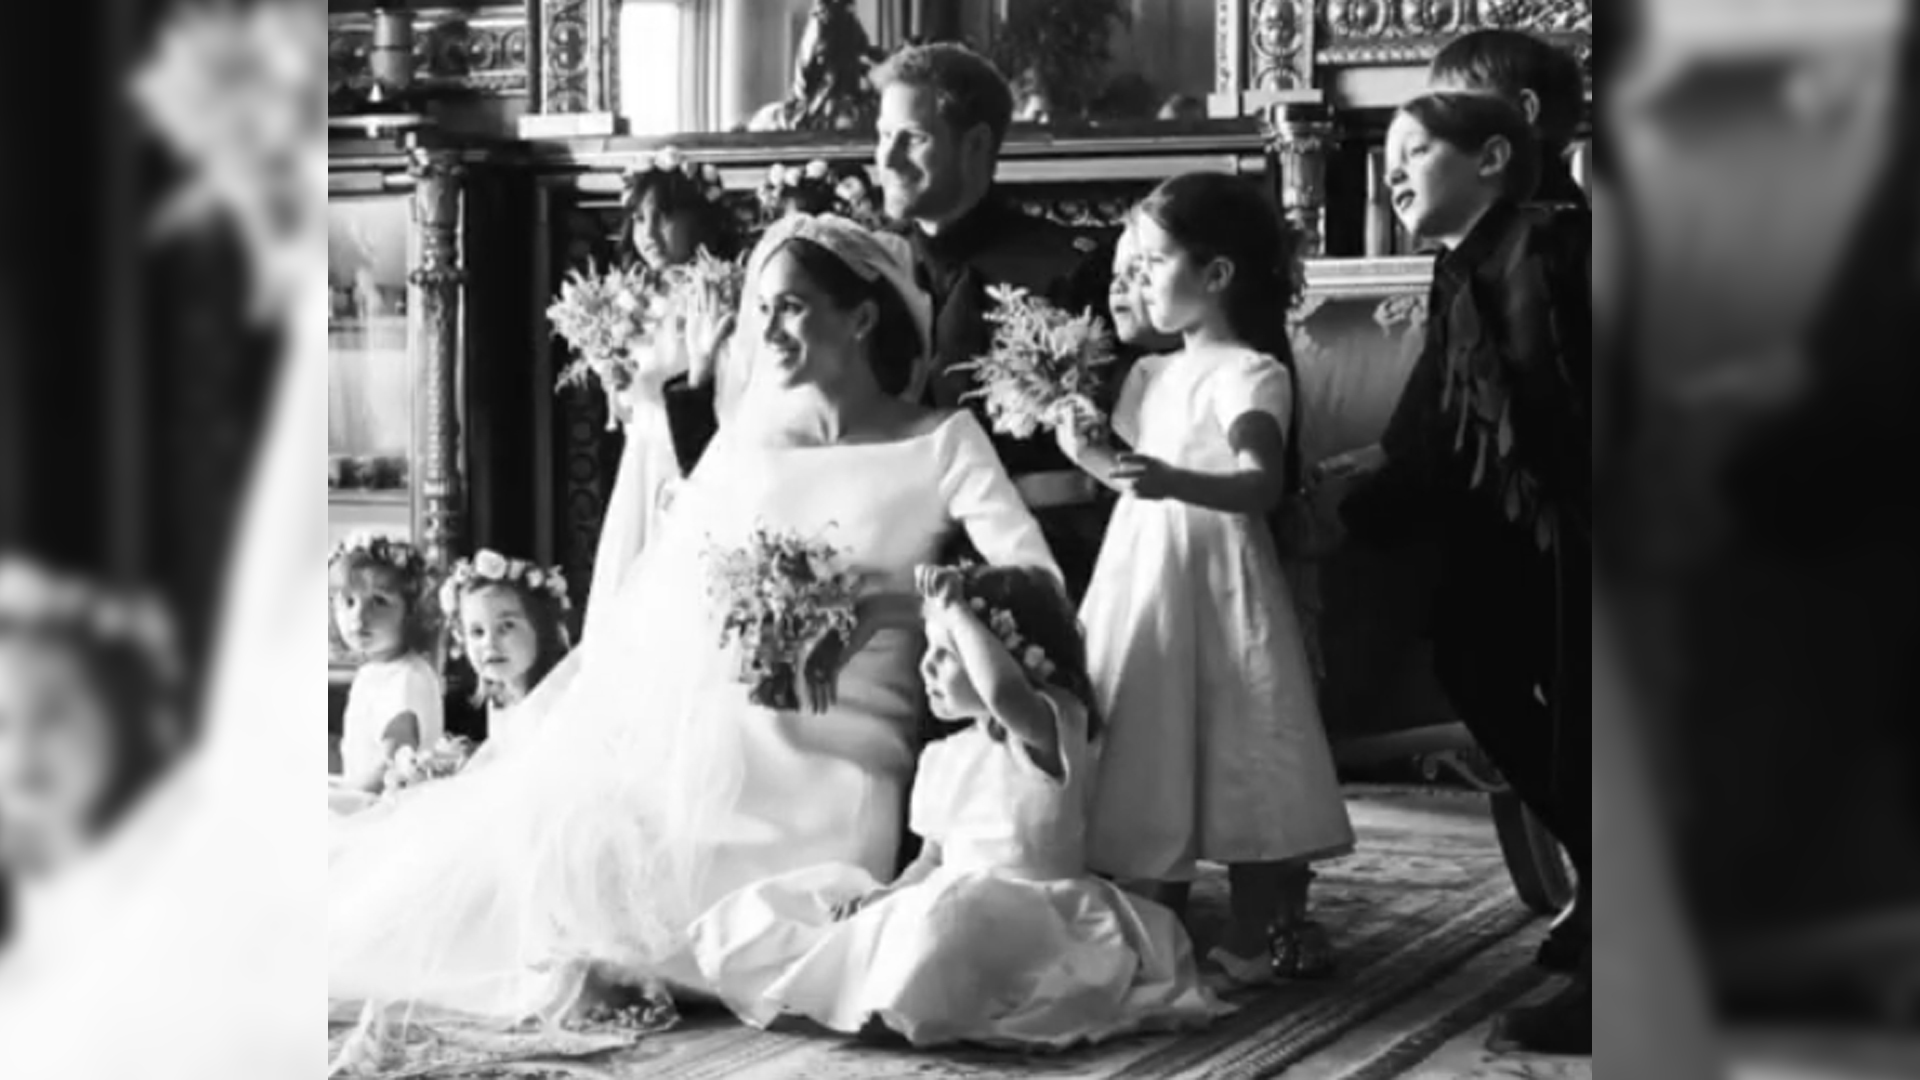 never before seen photos of harry and meghan s wedding released ctv news never before seen photos of harry and